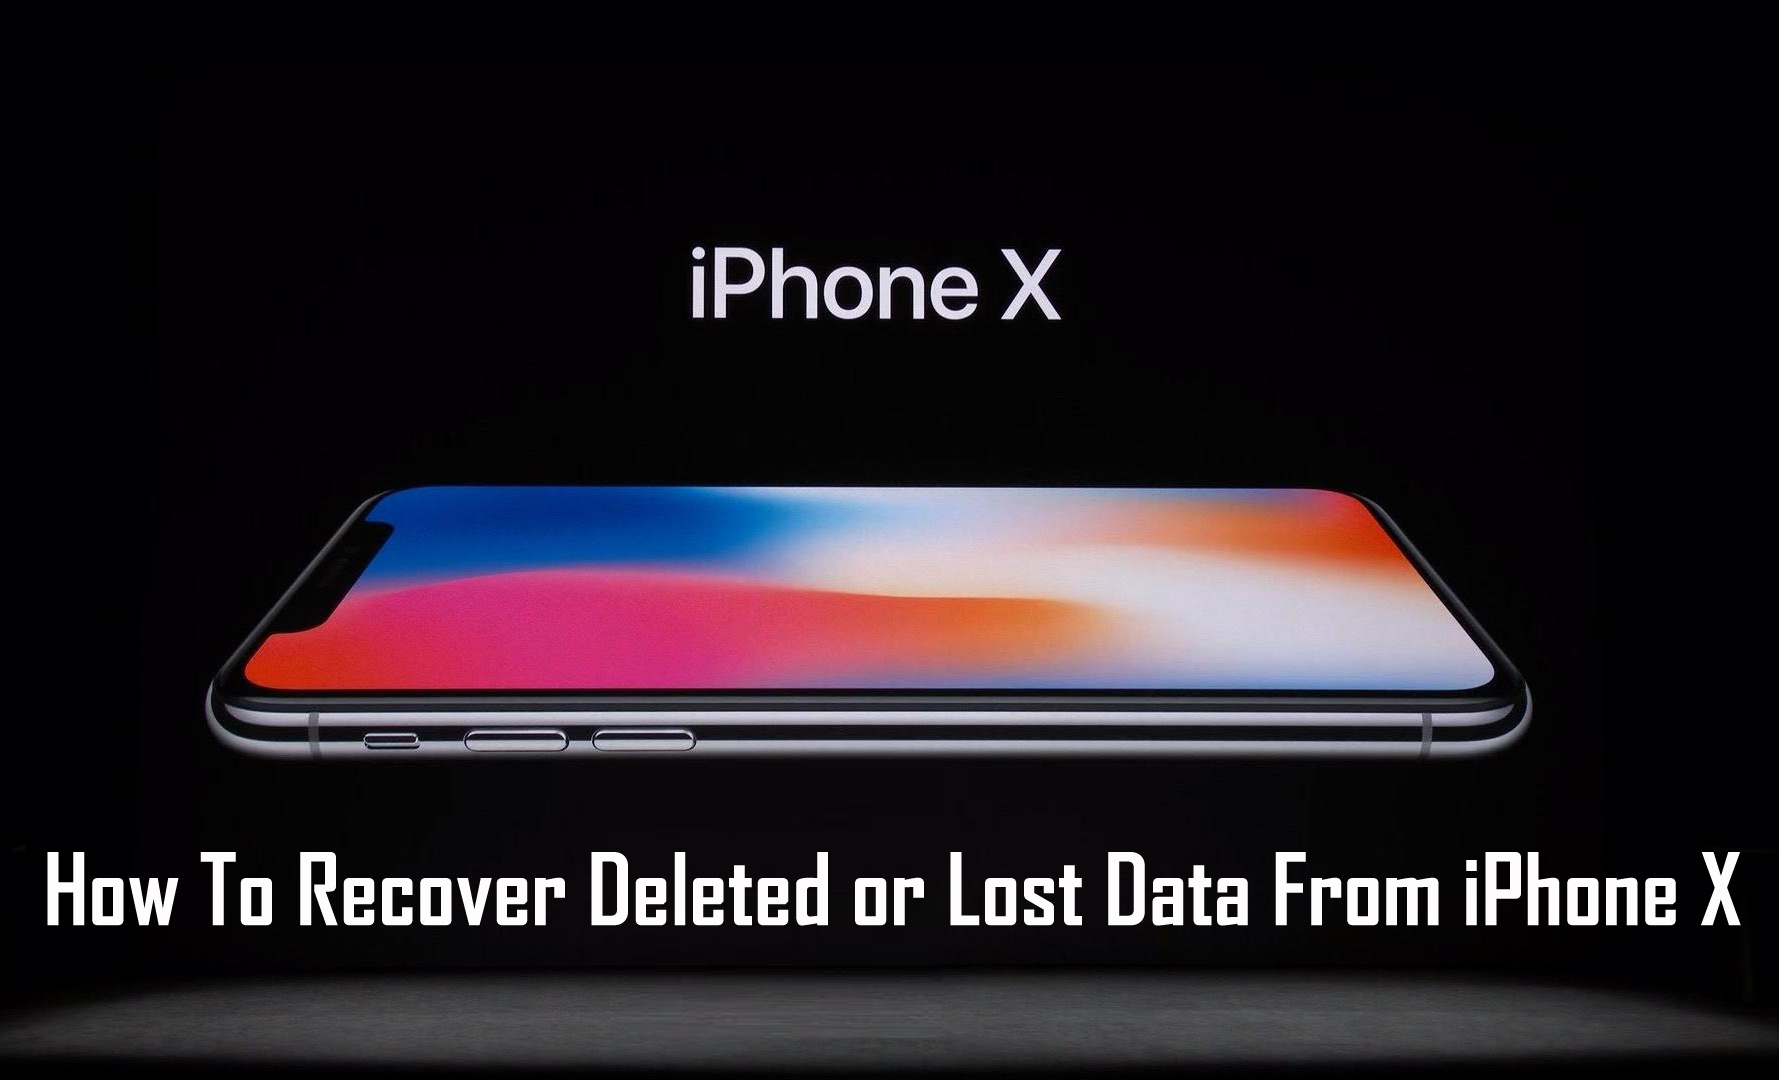 Methods To Recover Corrupted/Deleted Data From iPhone X